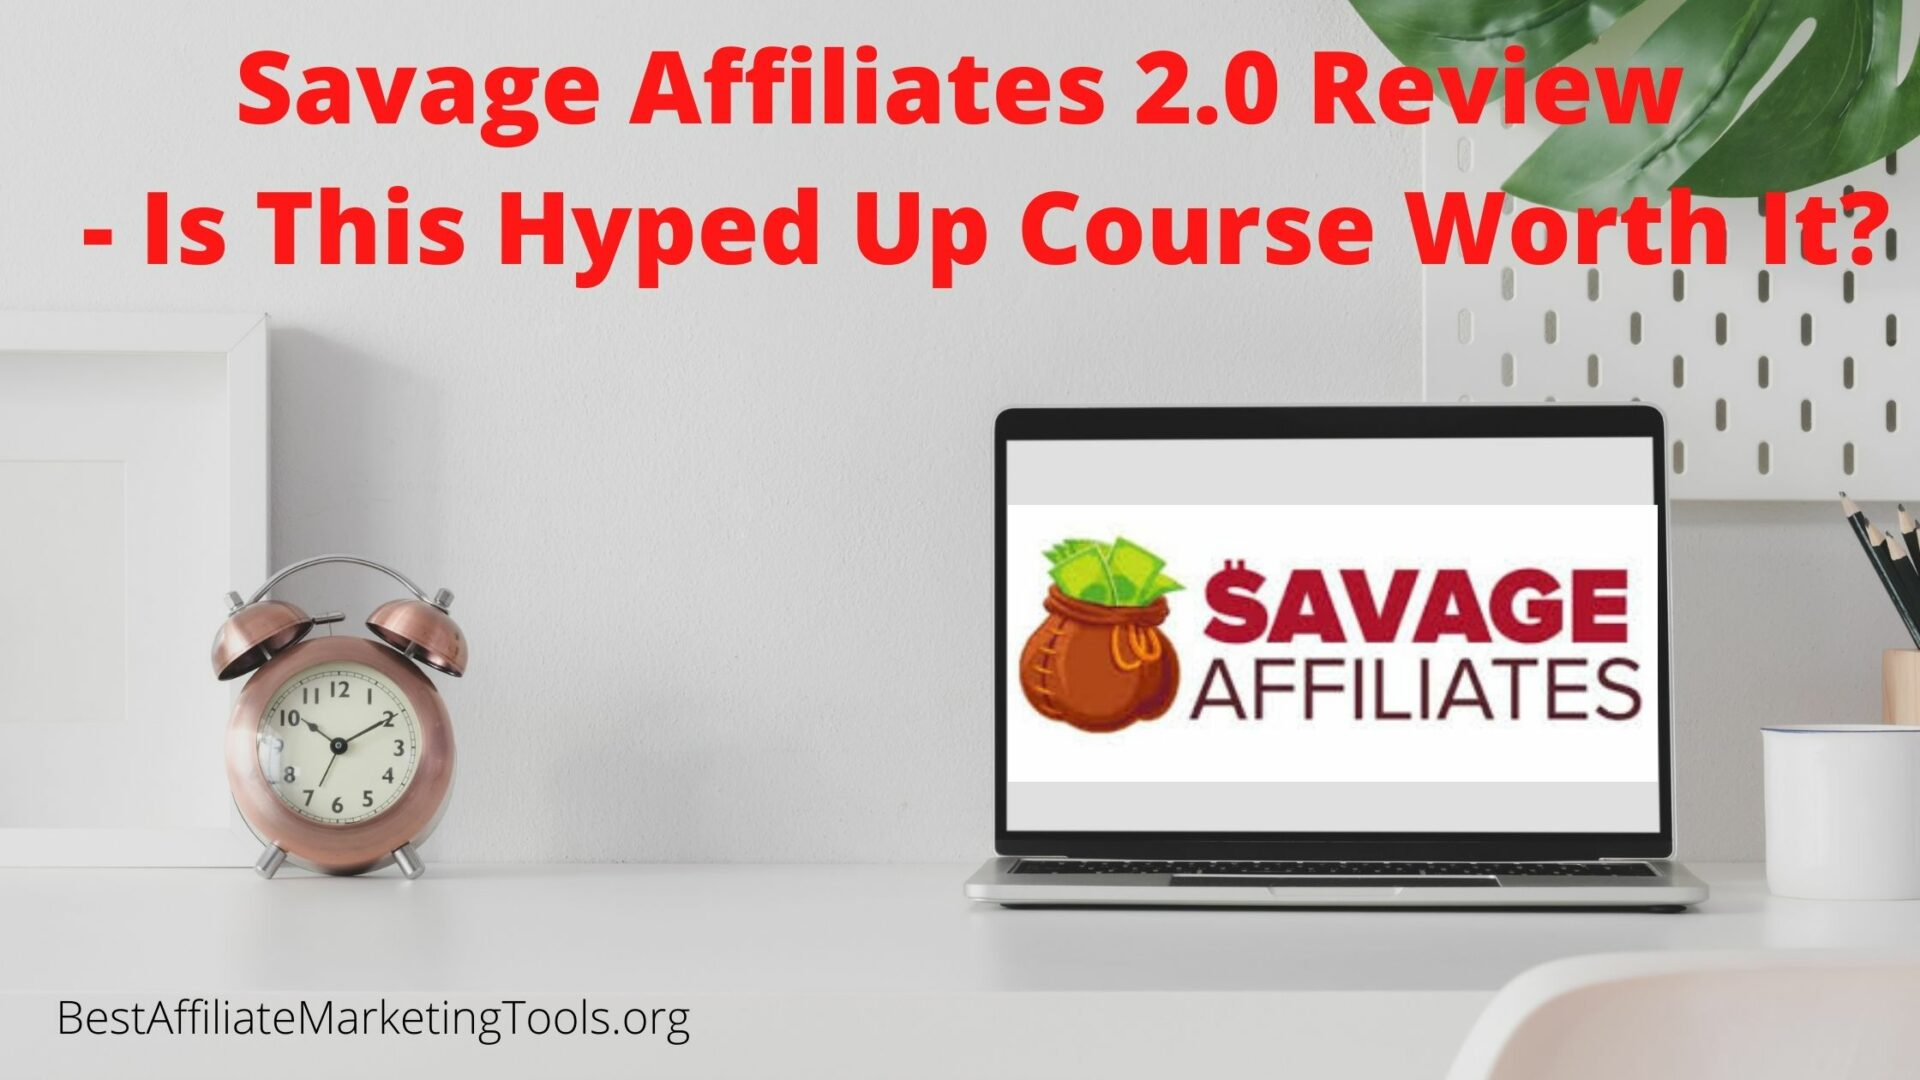 Savage Affiliates 2.0 Review - Is This Hyped Up Course Worth It